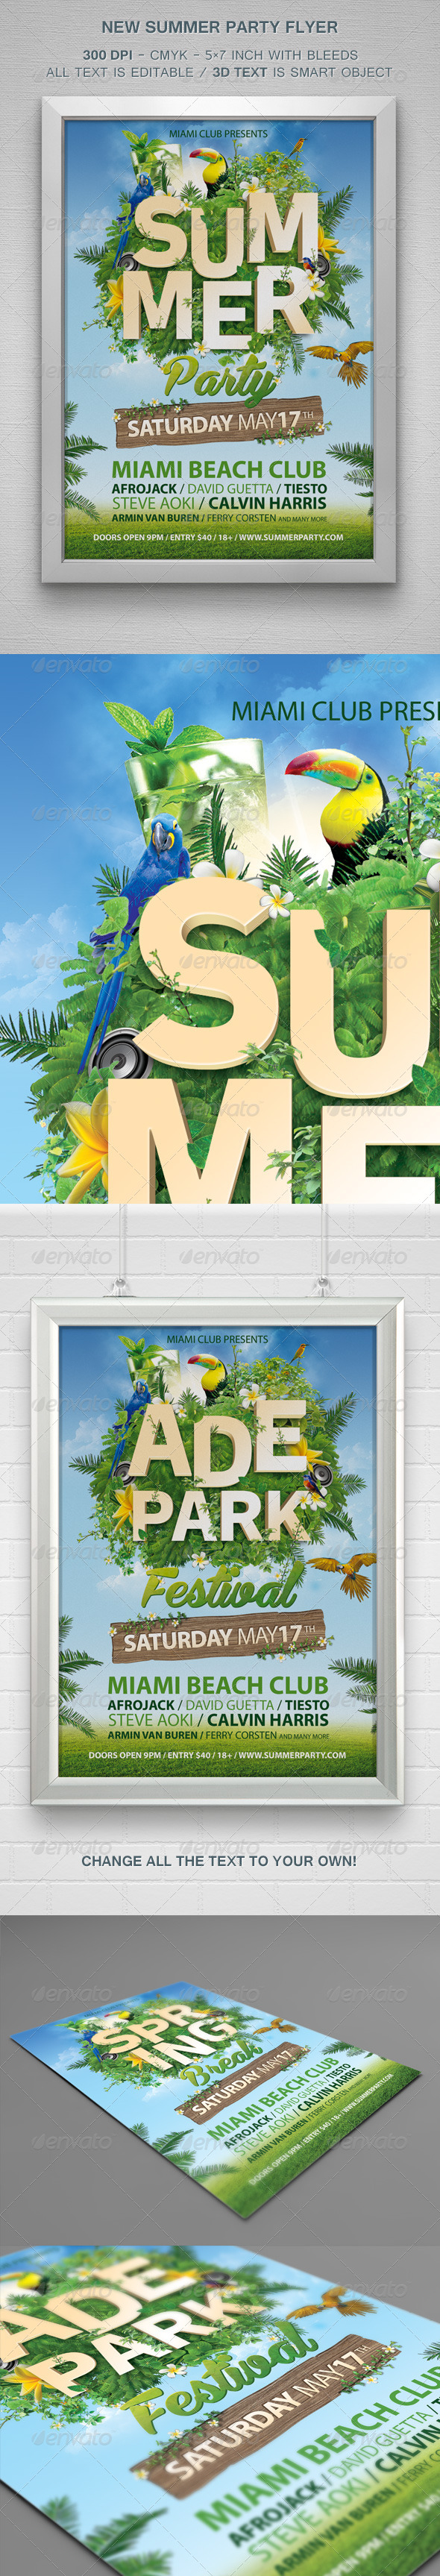 GraphicRiver New Summer Party Flyer 7766155